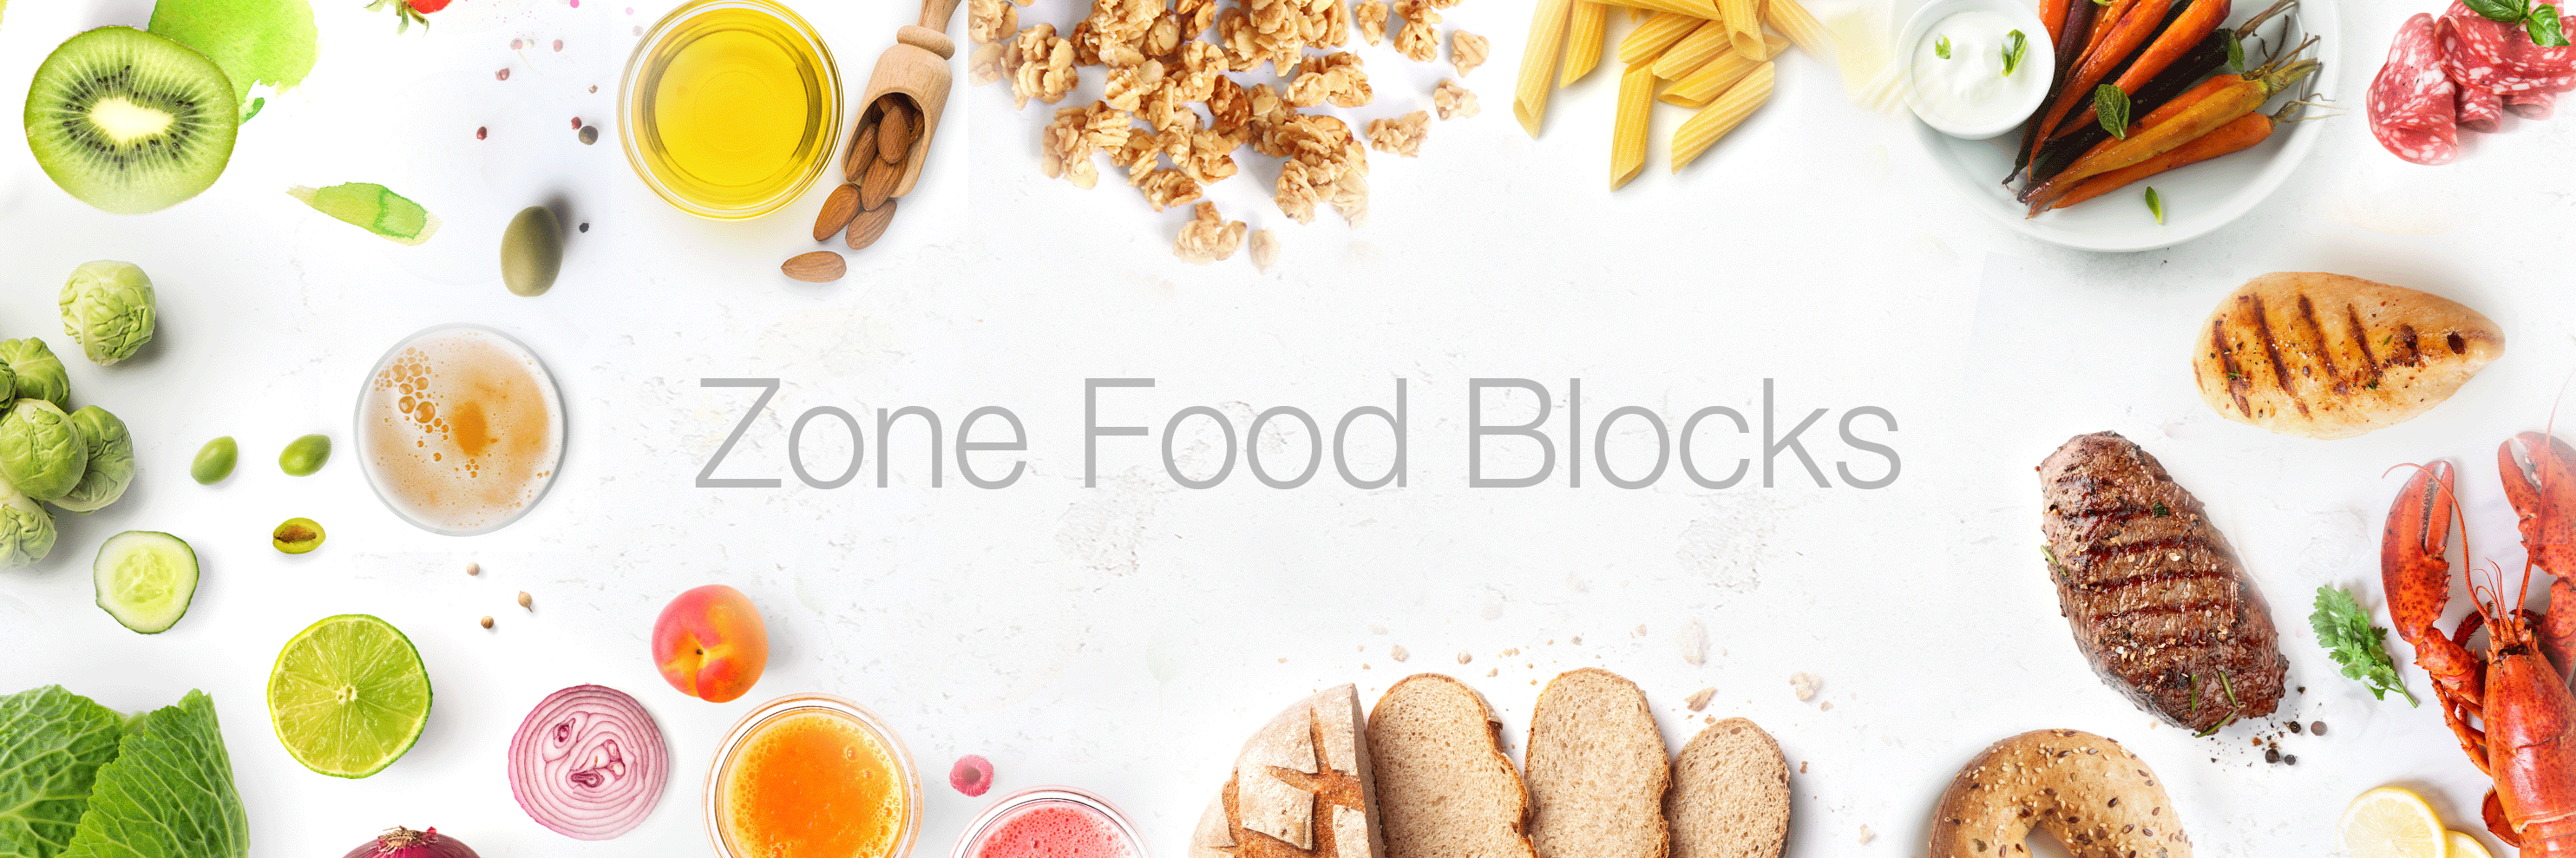 Zone-Food-Blocks